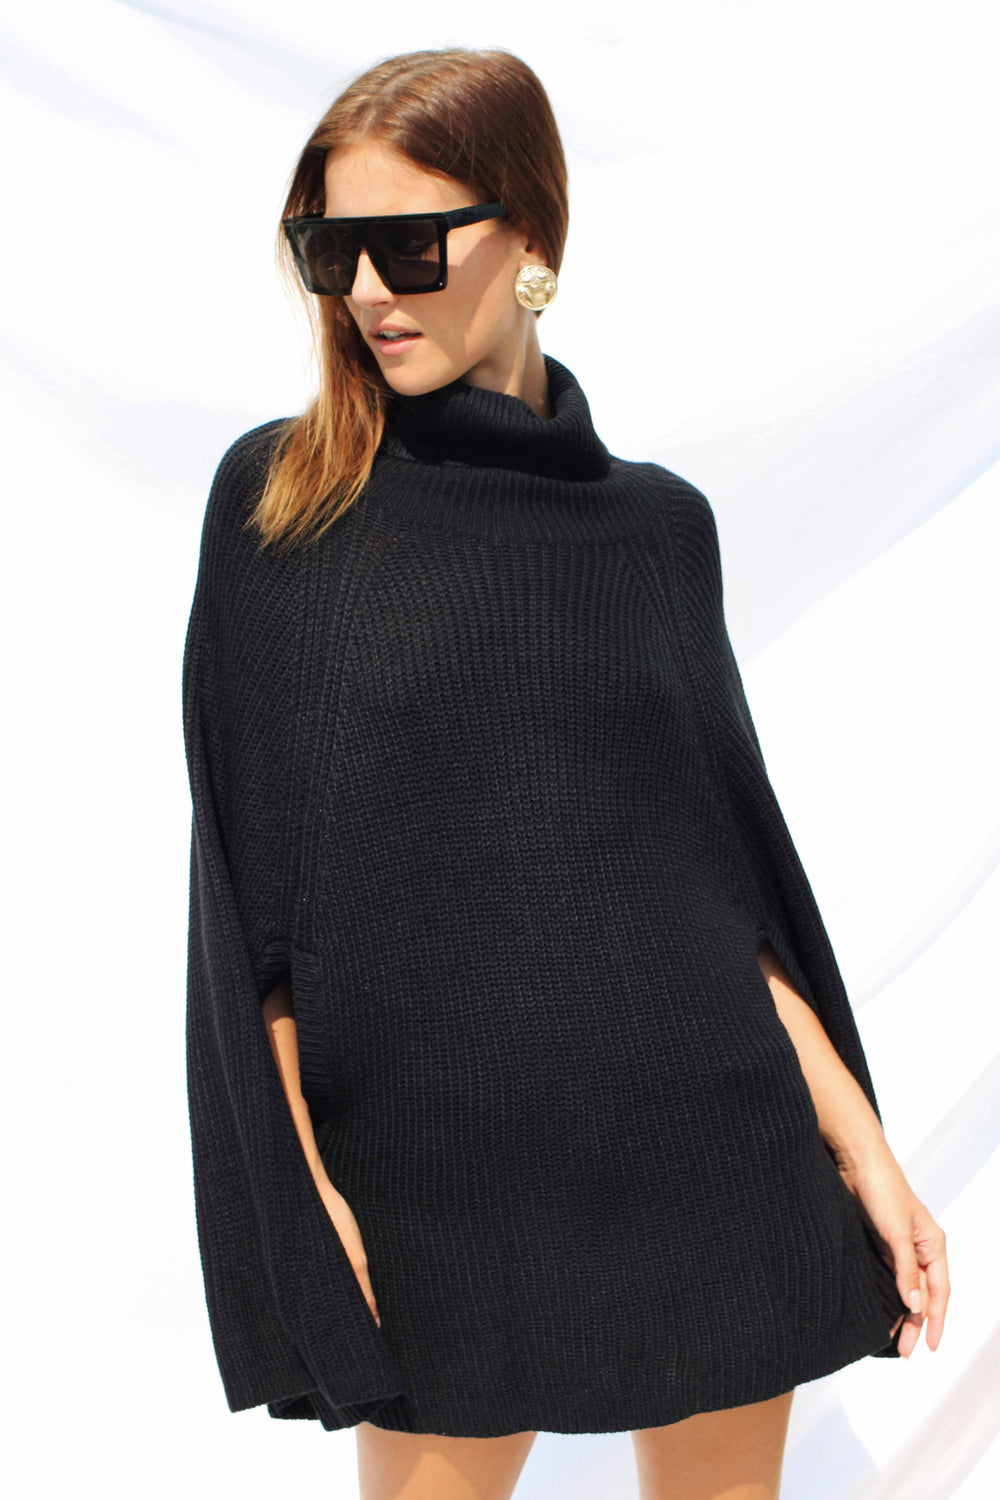 FERNANDA CAPE IN BLACK - Chic Le Frique